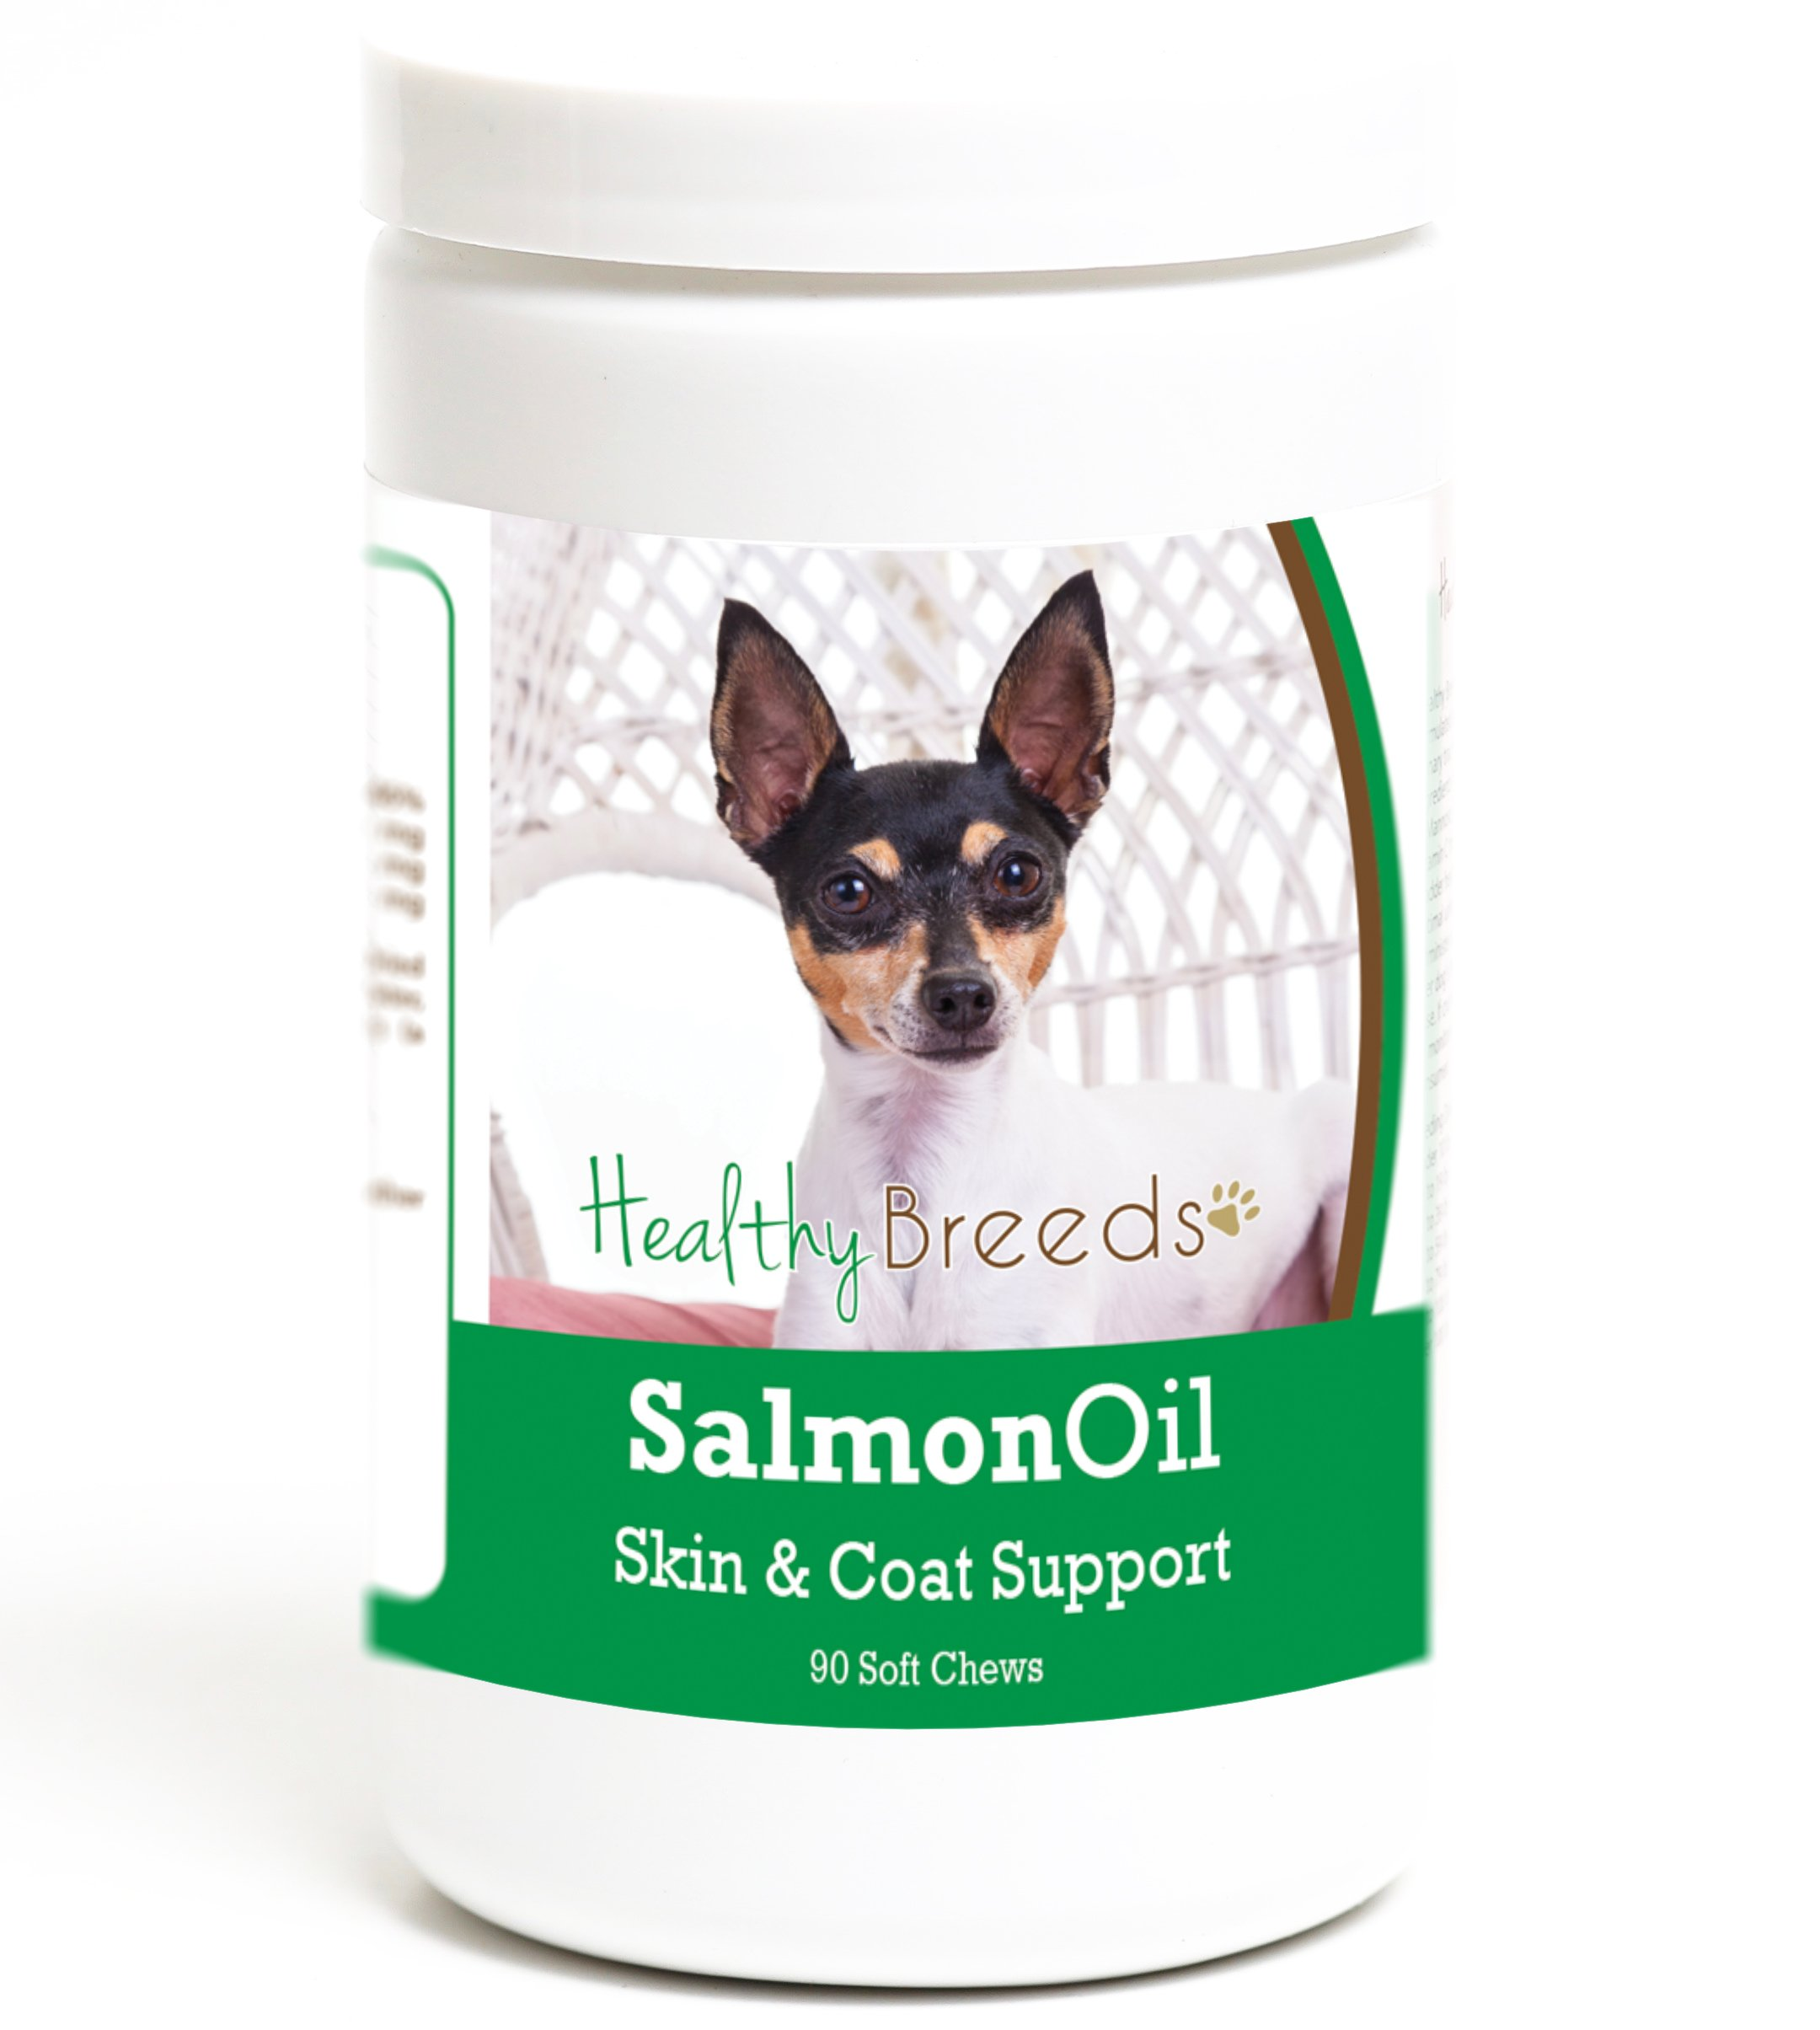 Healthy Breeds Clean Salmon Oil Soft Chews for Dogs for Toy Fox Terrier - Over 200 Breeds - Omega 3 & 6 EPA DHA Fatty Acid Support - Easier Than Capsules & Pumps - 90 Chews by Healthy Breeds (Image #1)